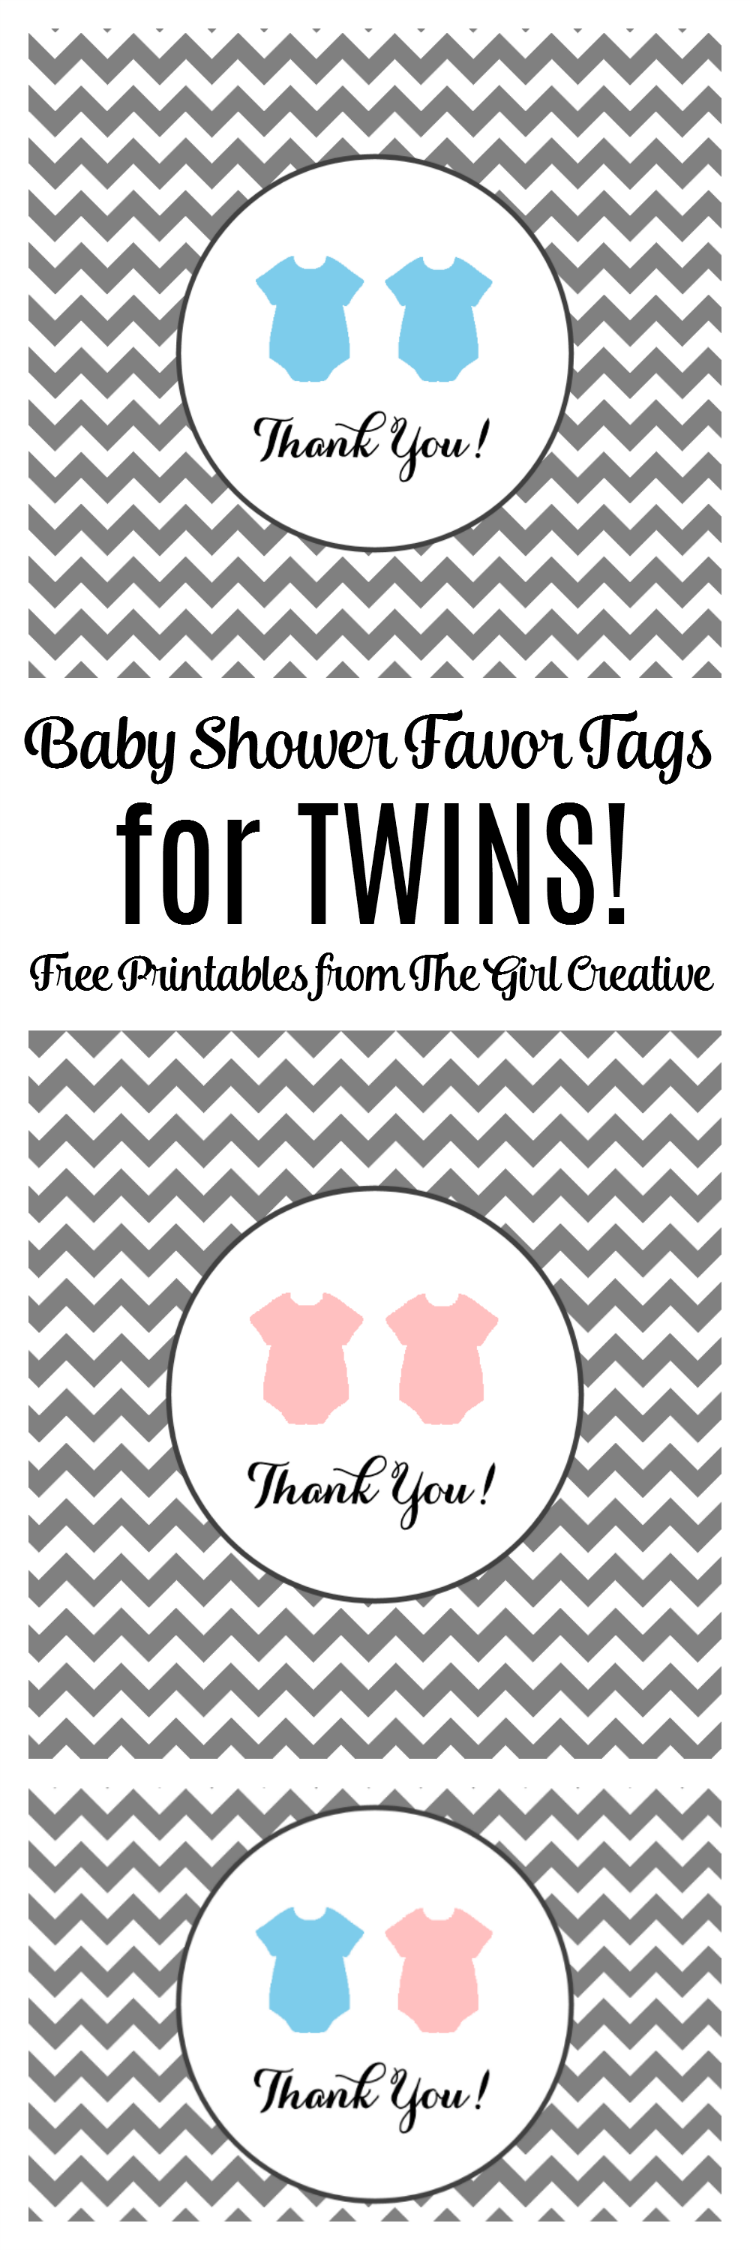 graphic about Free Printable Baby Shower Favor Tags identify Youngster Shower Prefer Tags for Twins - The Lady Inventive